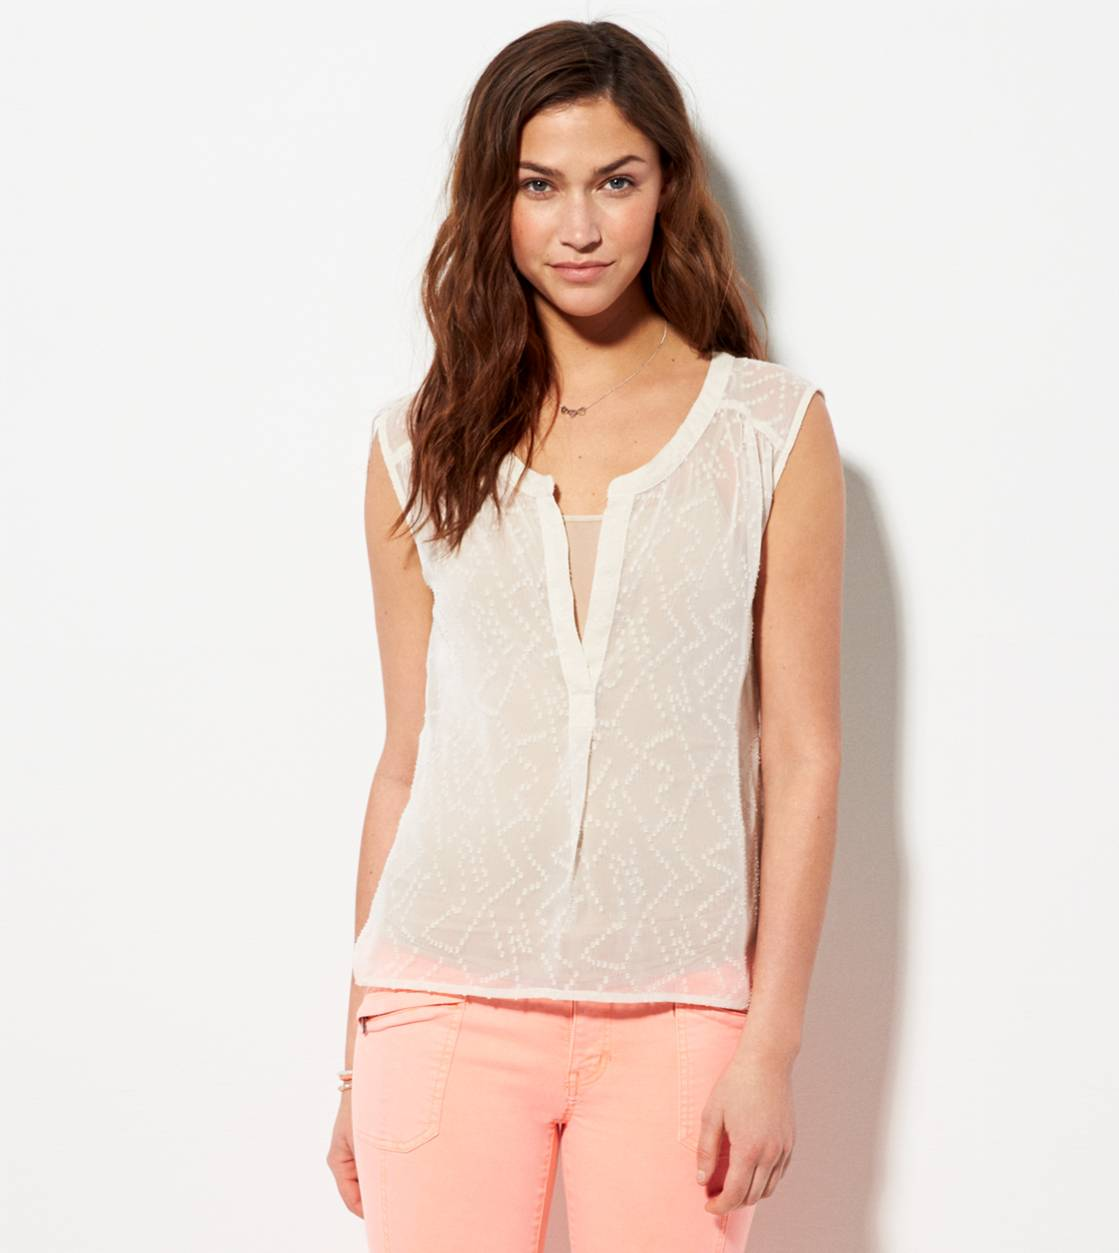 Creme Brulee AE Textured Chiffon Sleeveless Shirt